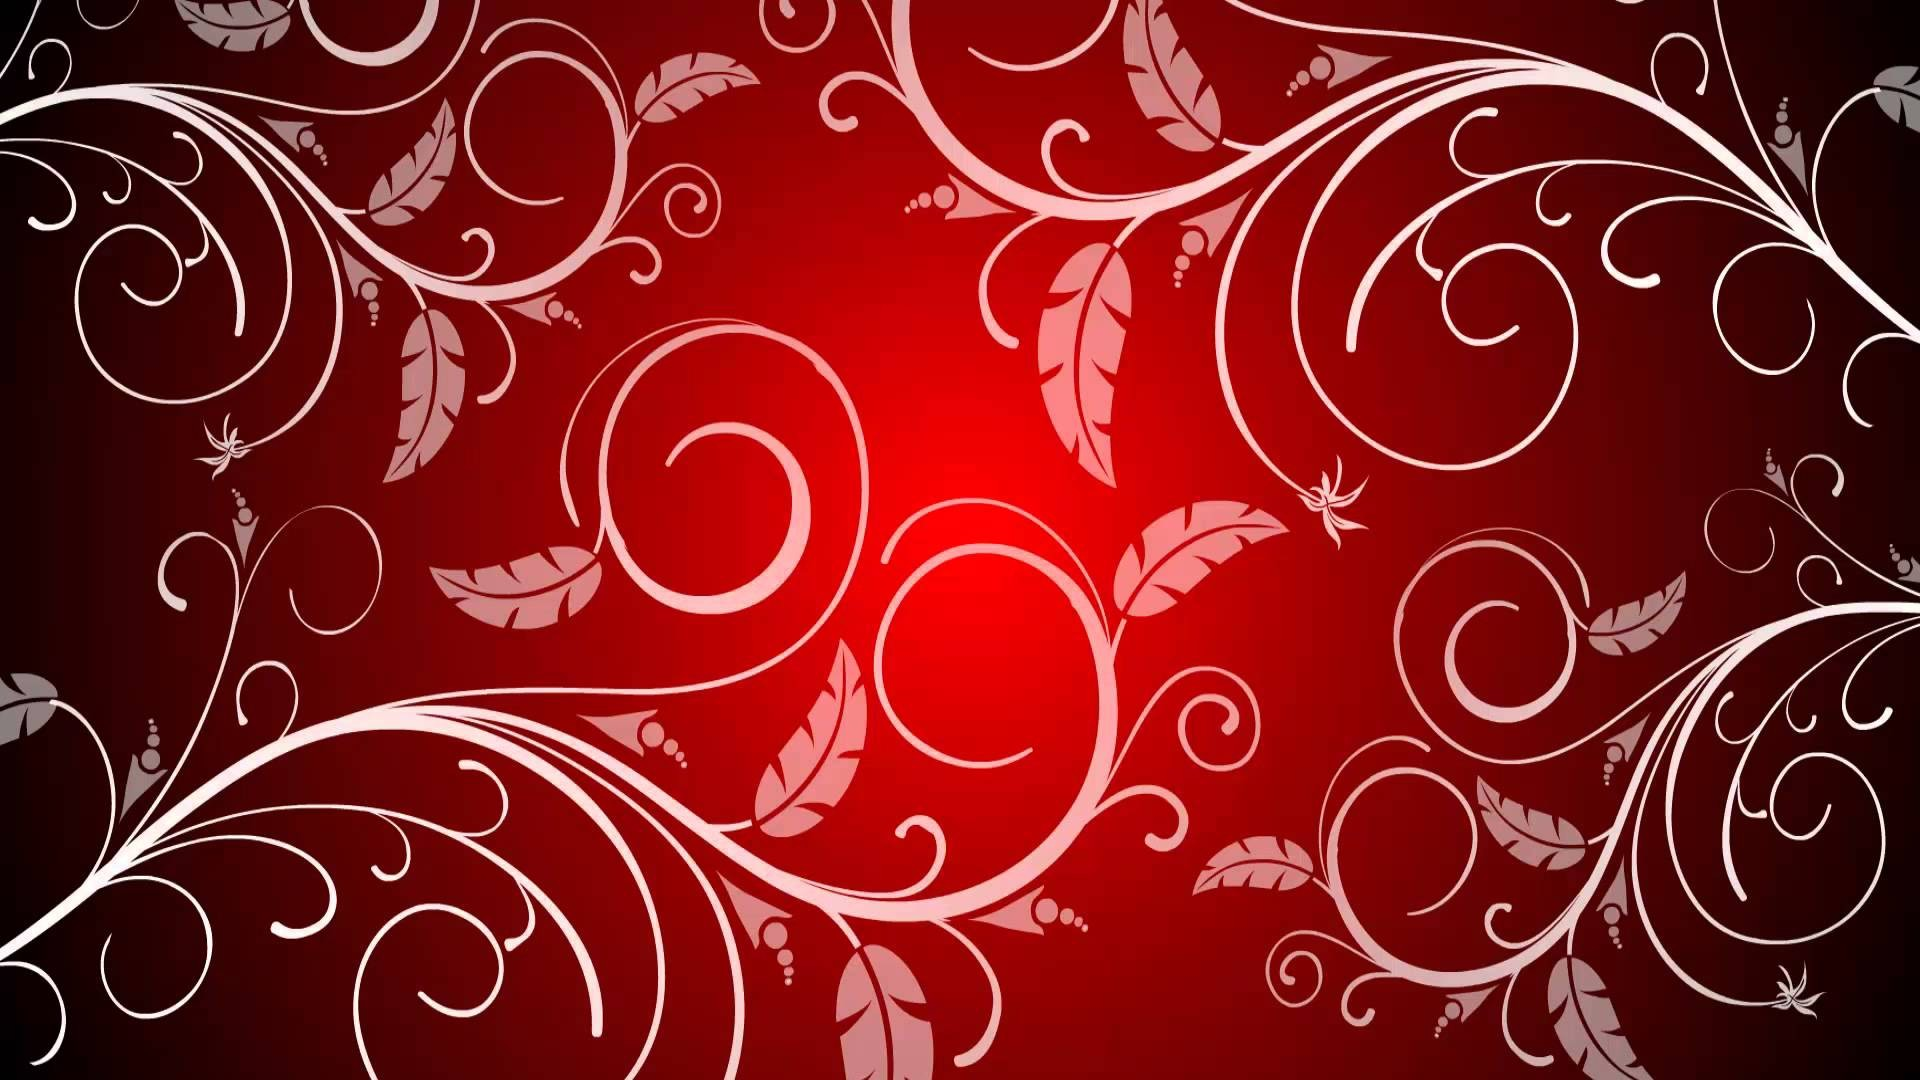 Floral background download free high resolution wallpapers for desktop mobile laptop in any - Floral background ...